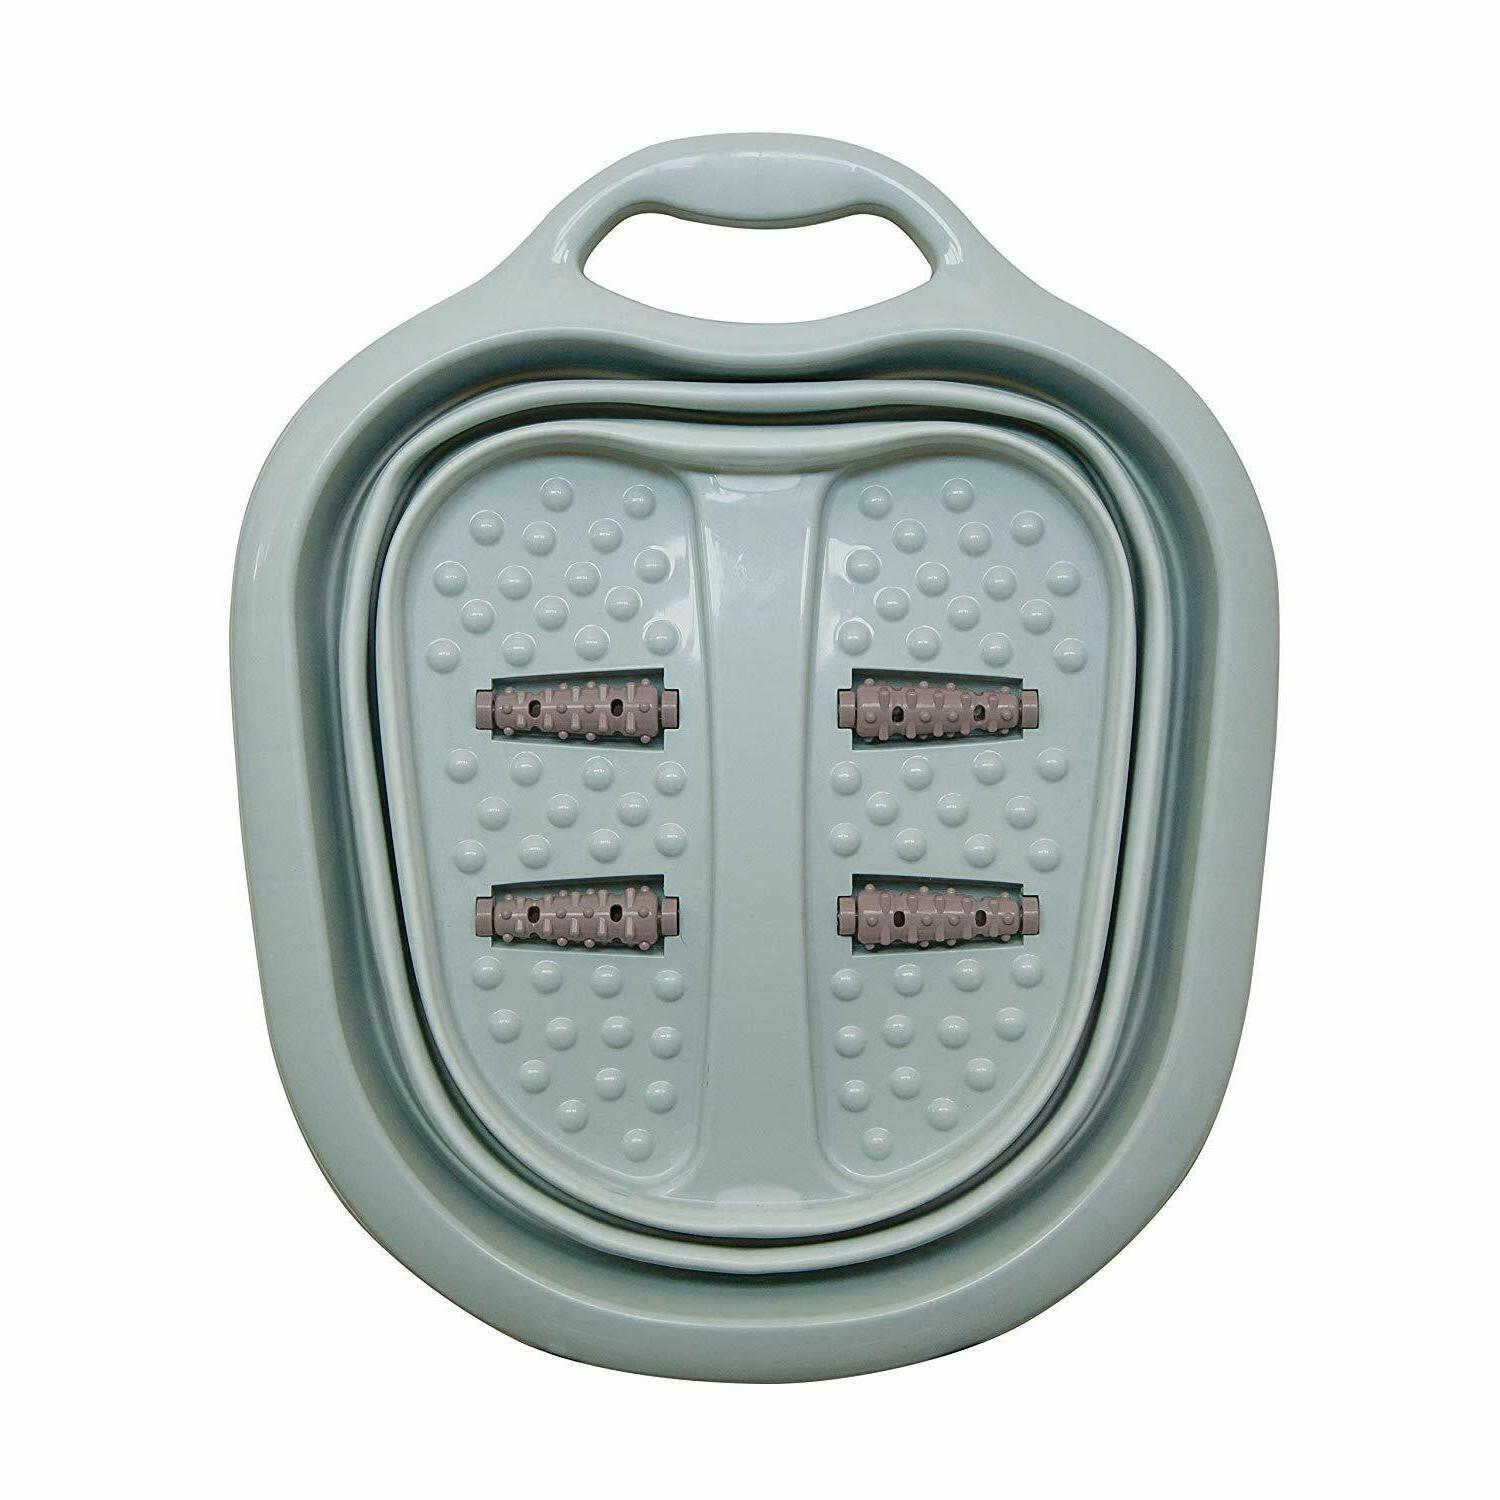 Collapsible Spa Foot Rollers Tub